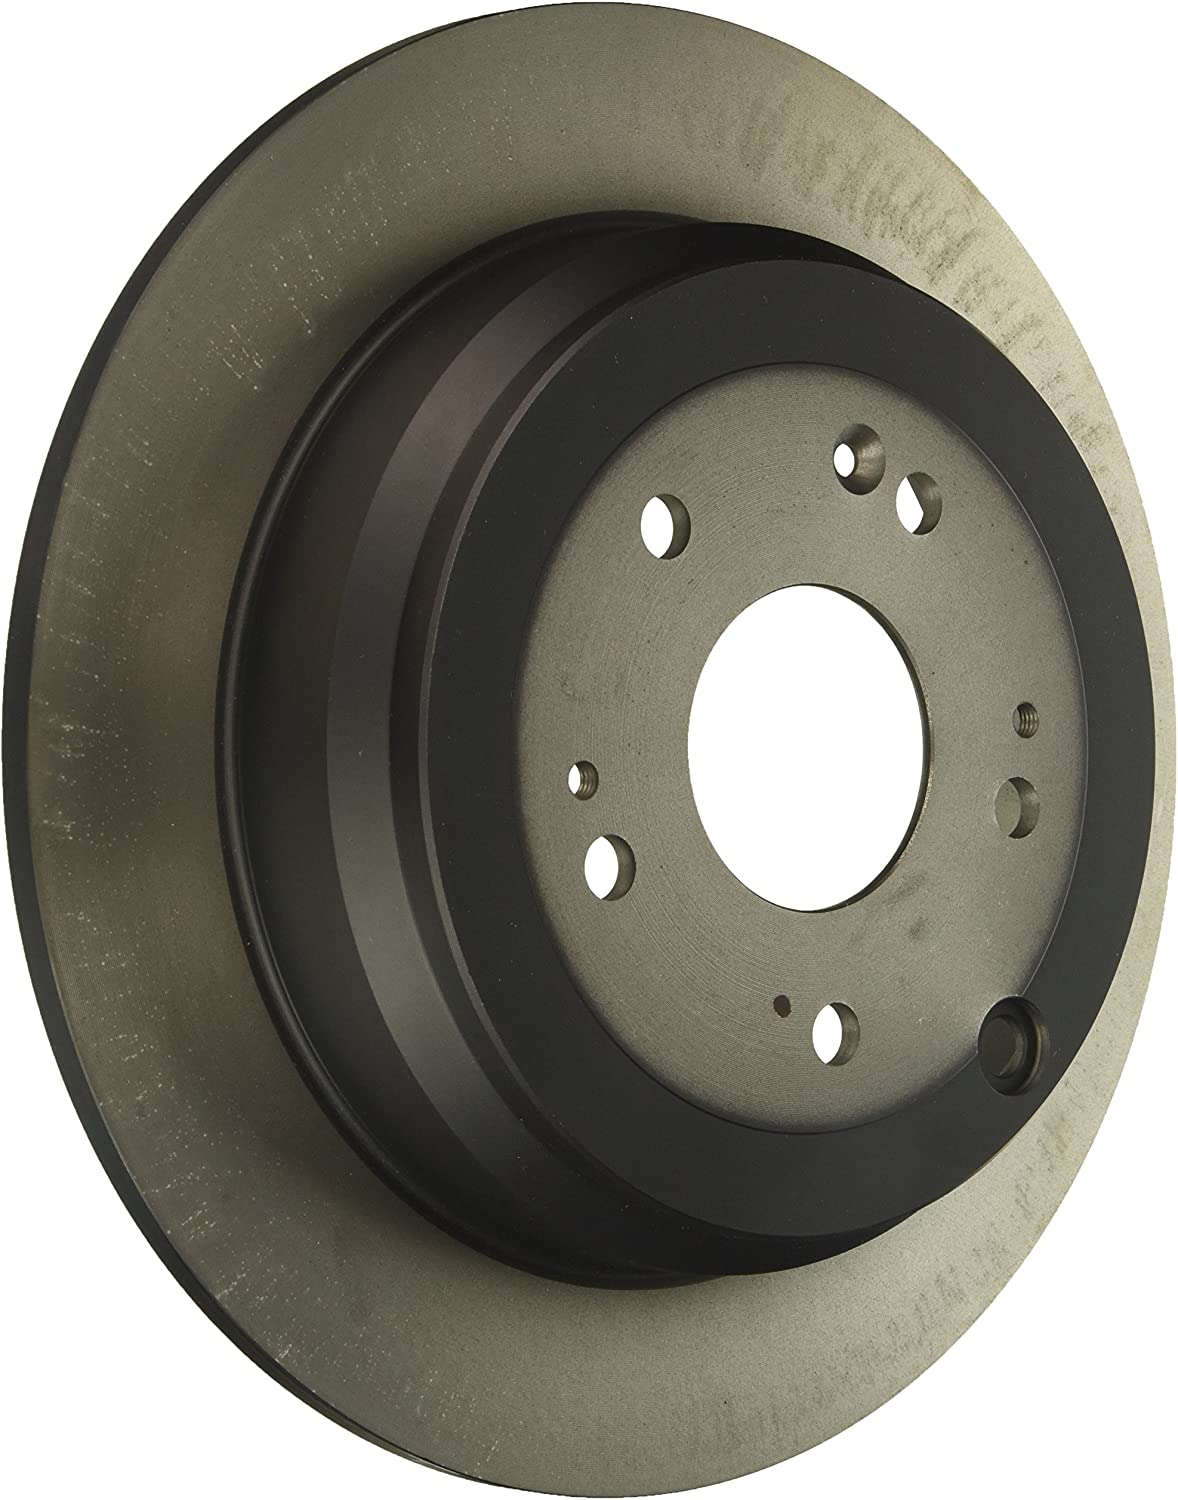 Genuine Honda 42510-T0G-A04 Rear Disk Max famous 45% OFF In Drum Brake